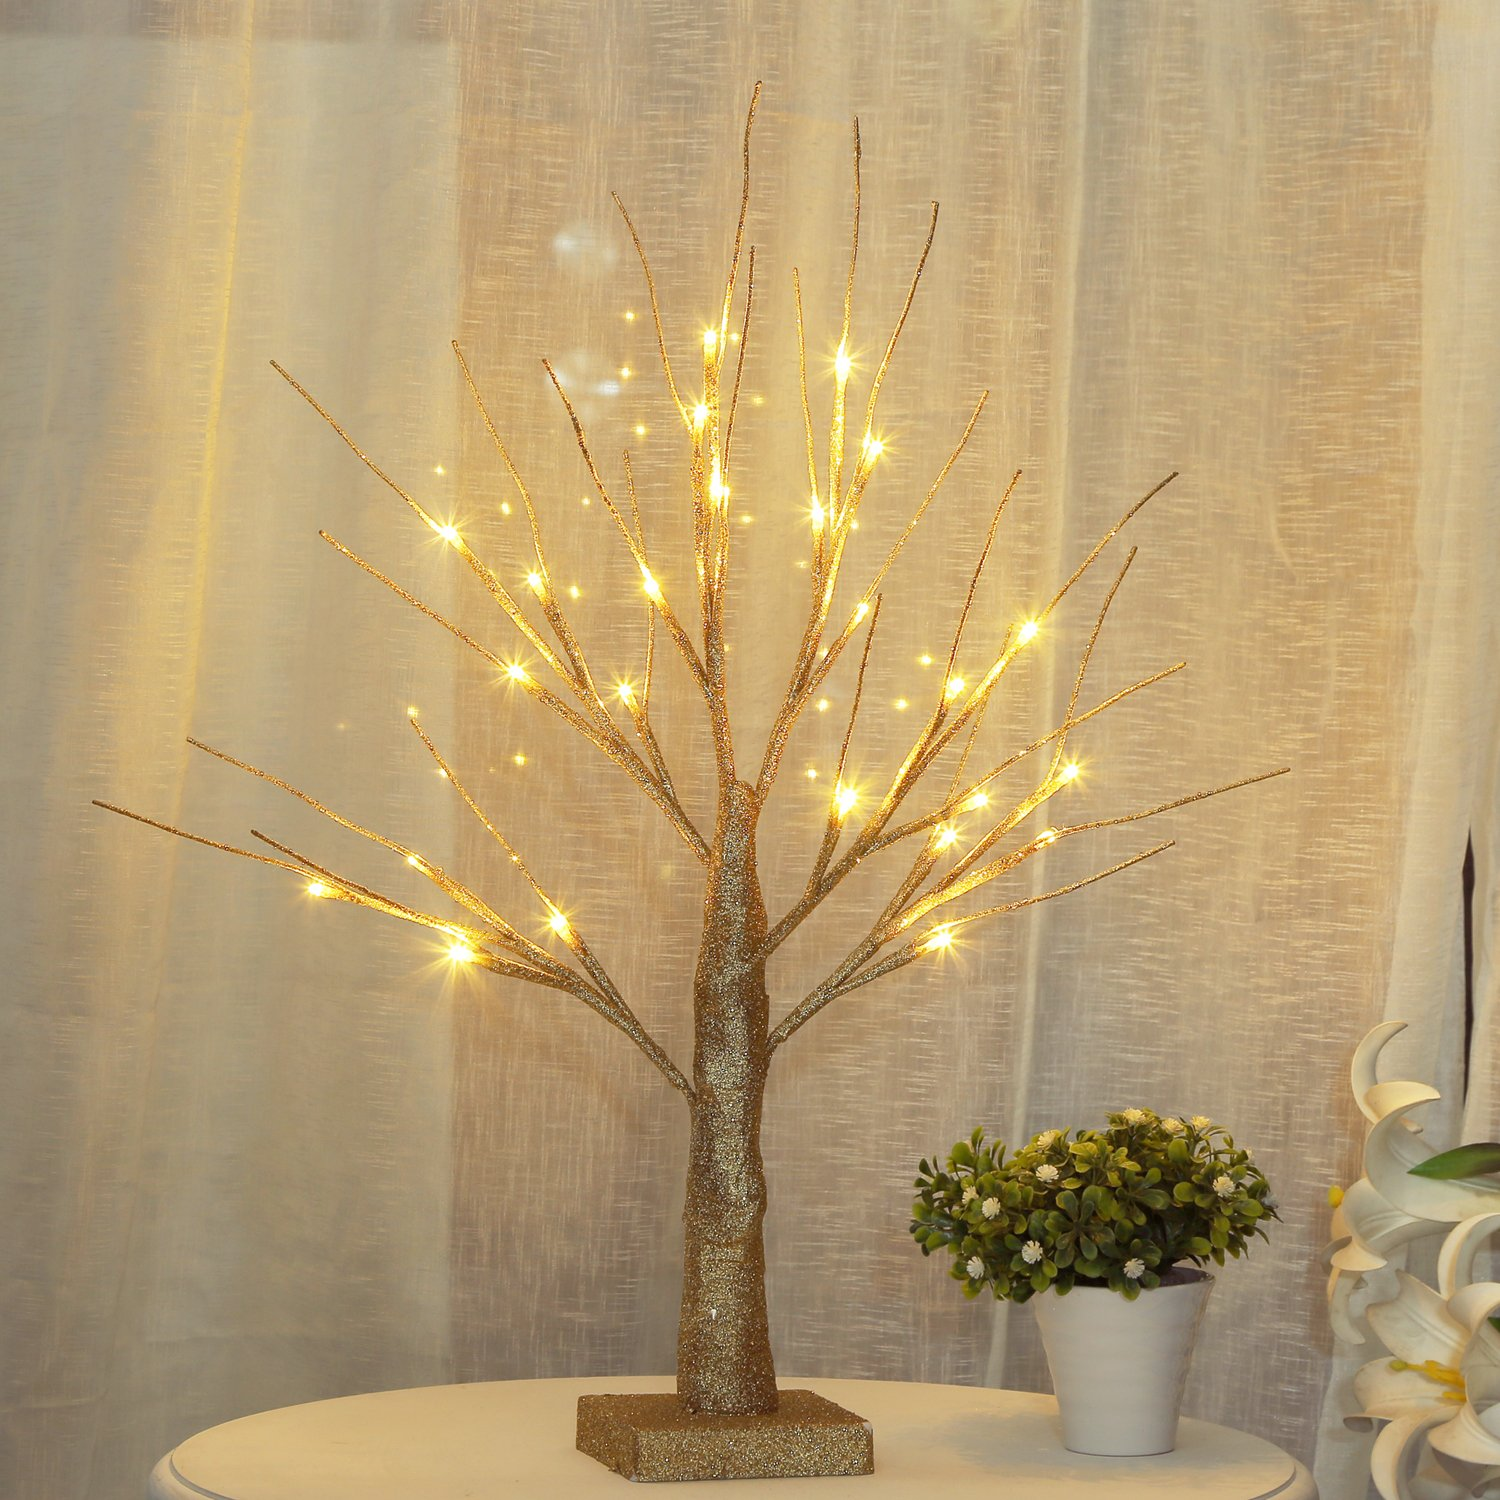 Bolylight LED Bling Bling Birch Night Light Table Tree Lamp Jewelry Holder Centerpiece 17.71 inch 24L Great Decoration Home/Christmas/Party/Festival/Wedding, Warm White, Gold